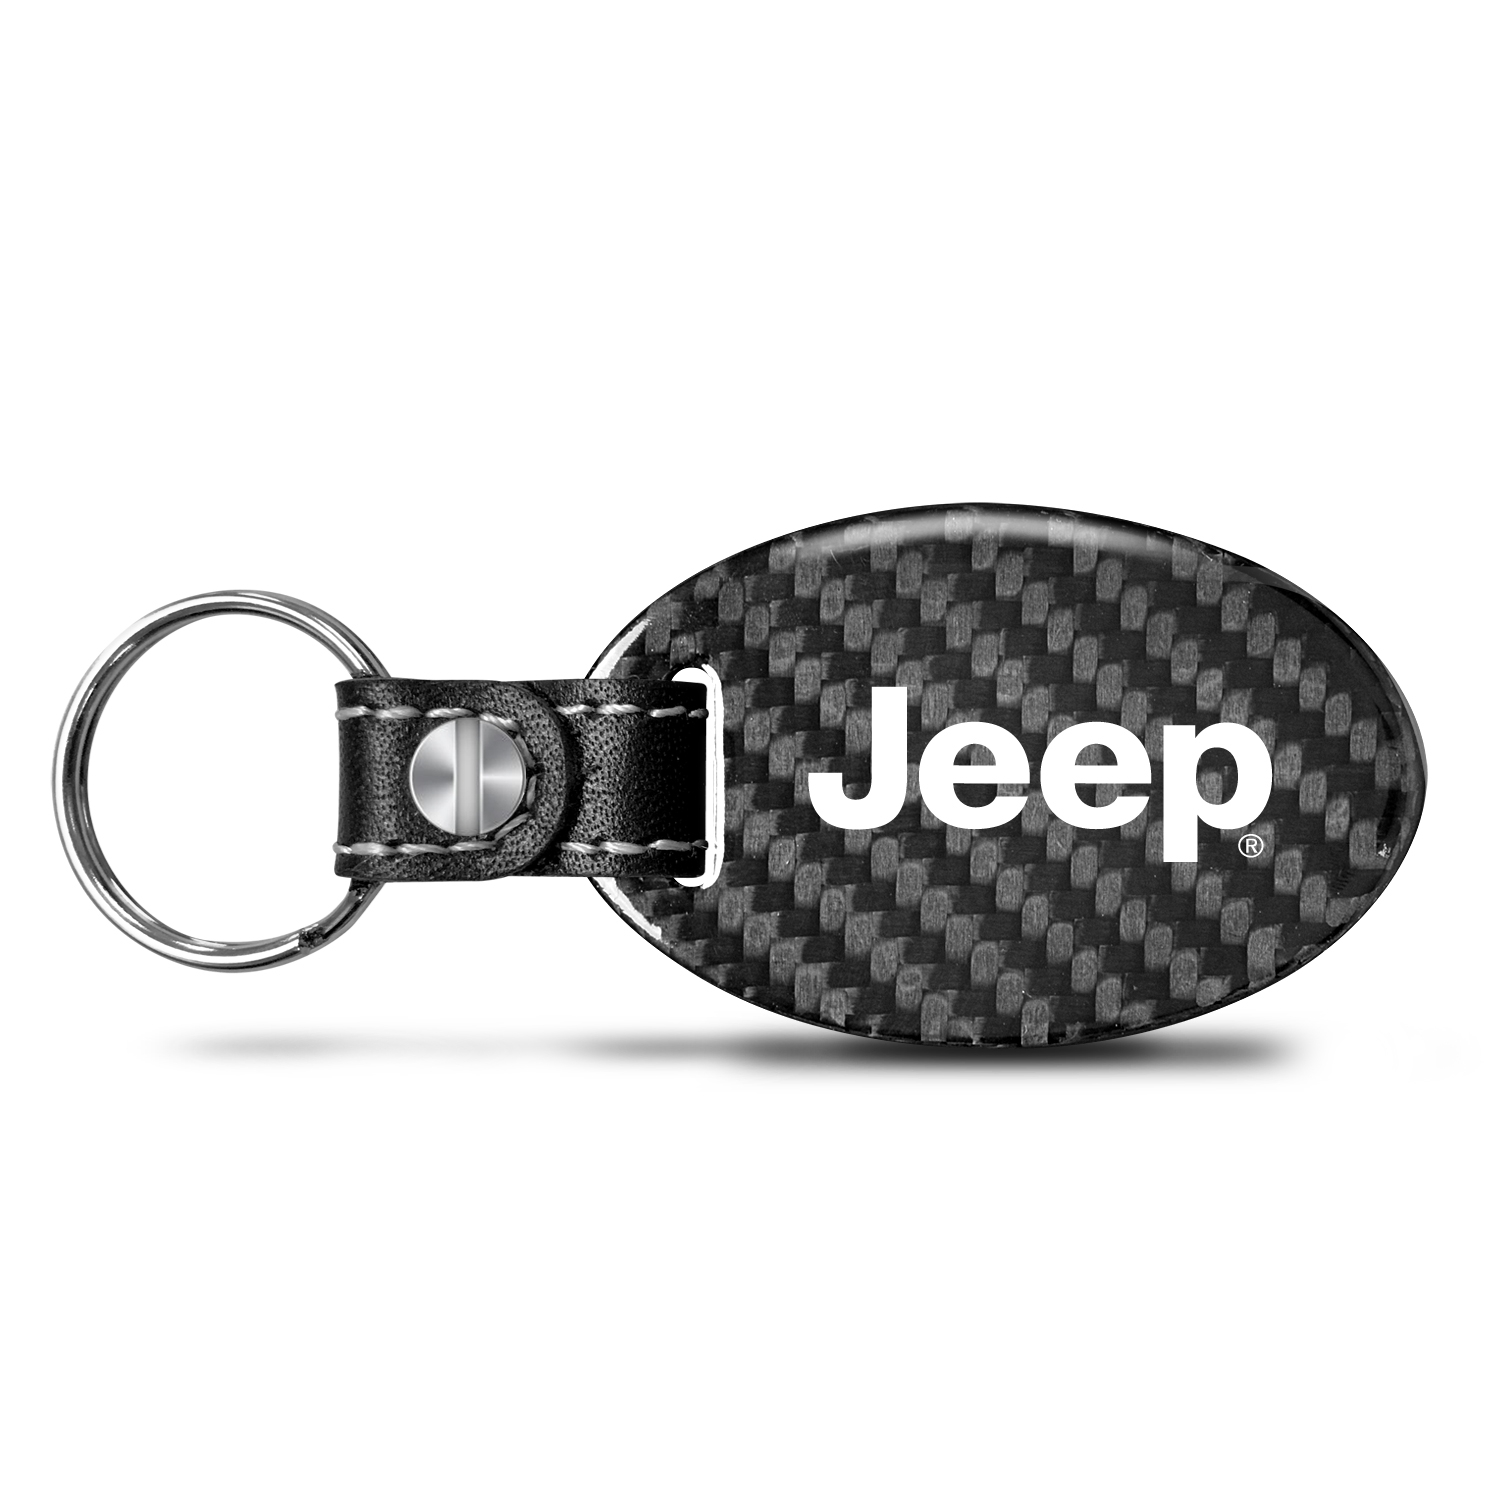 Jeep Real Carbon Fiber Large Oval Shape with Black Leather Strap Key Chain